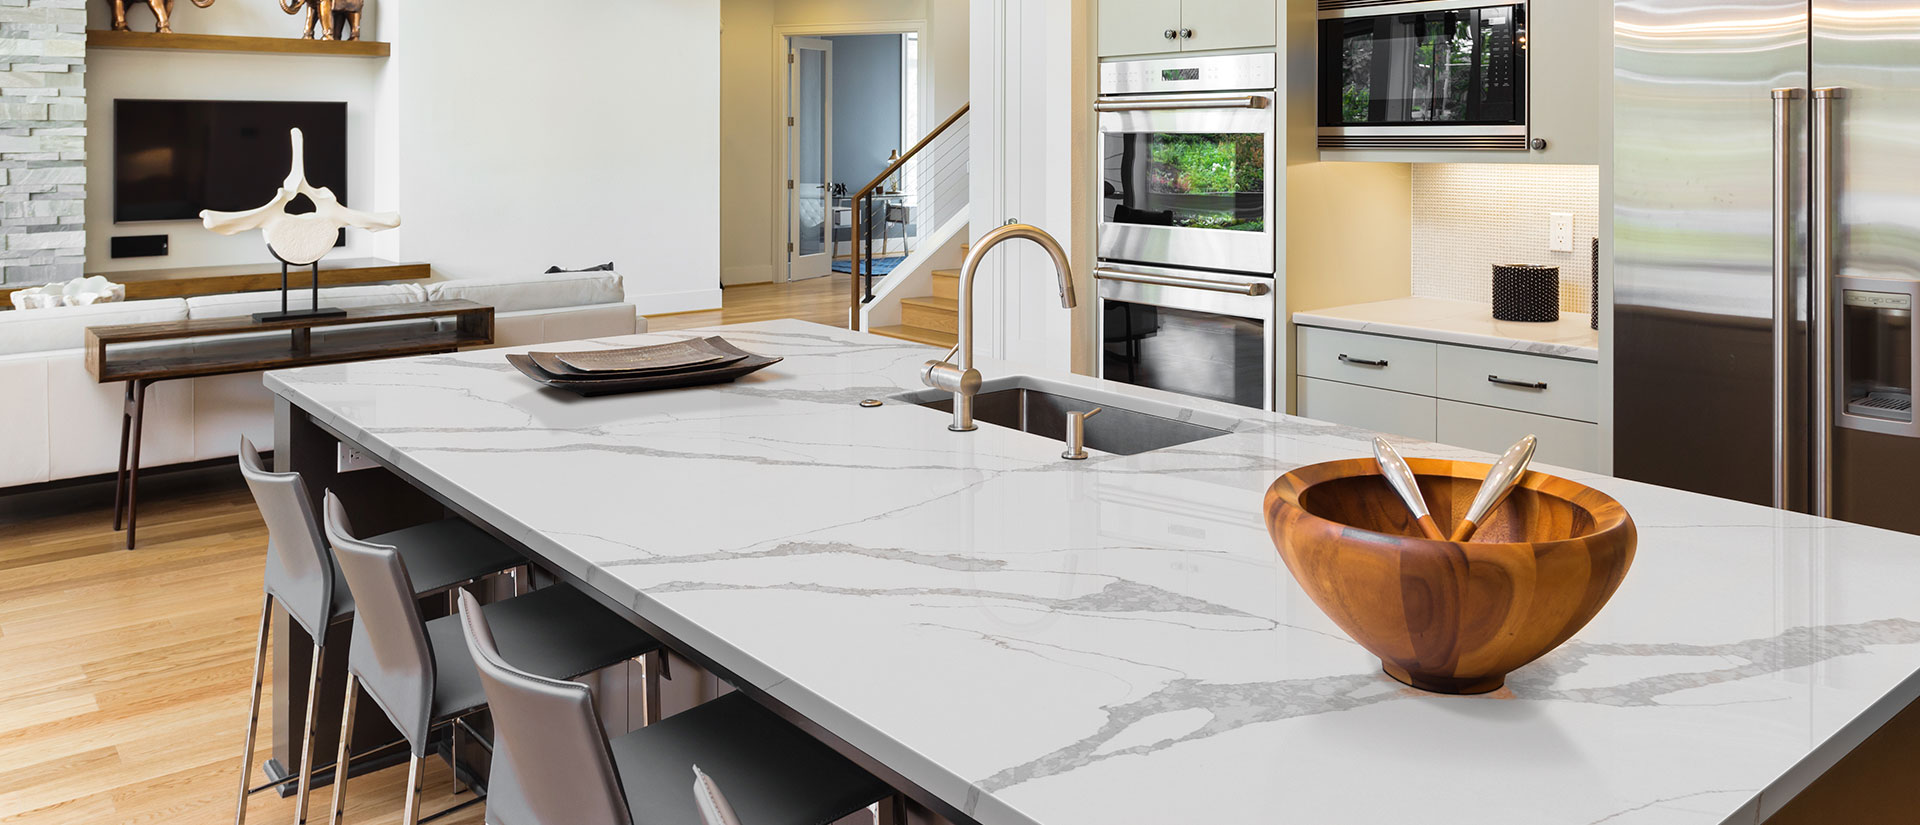 Algonquin Granite And Quartz Countertops Precision Stone Design